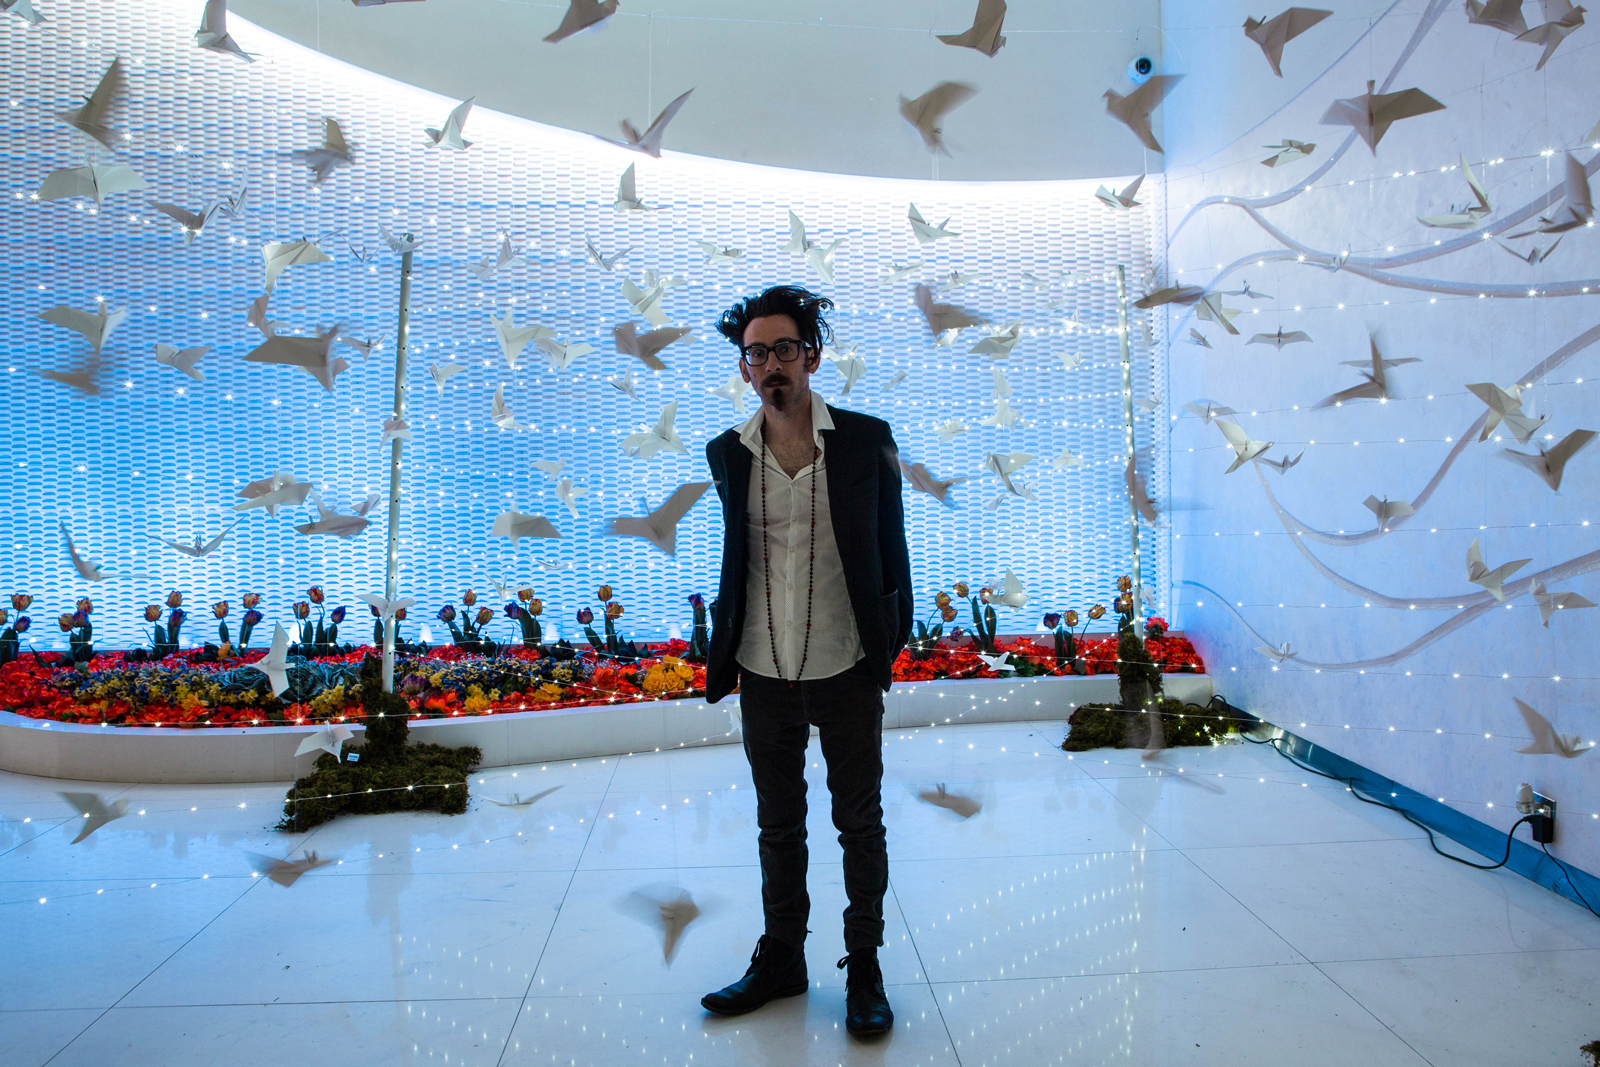 '50 Eagles Take Flight' installation, commissioned for a private event